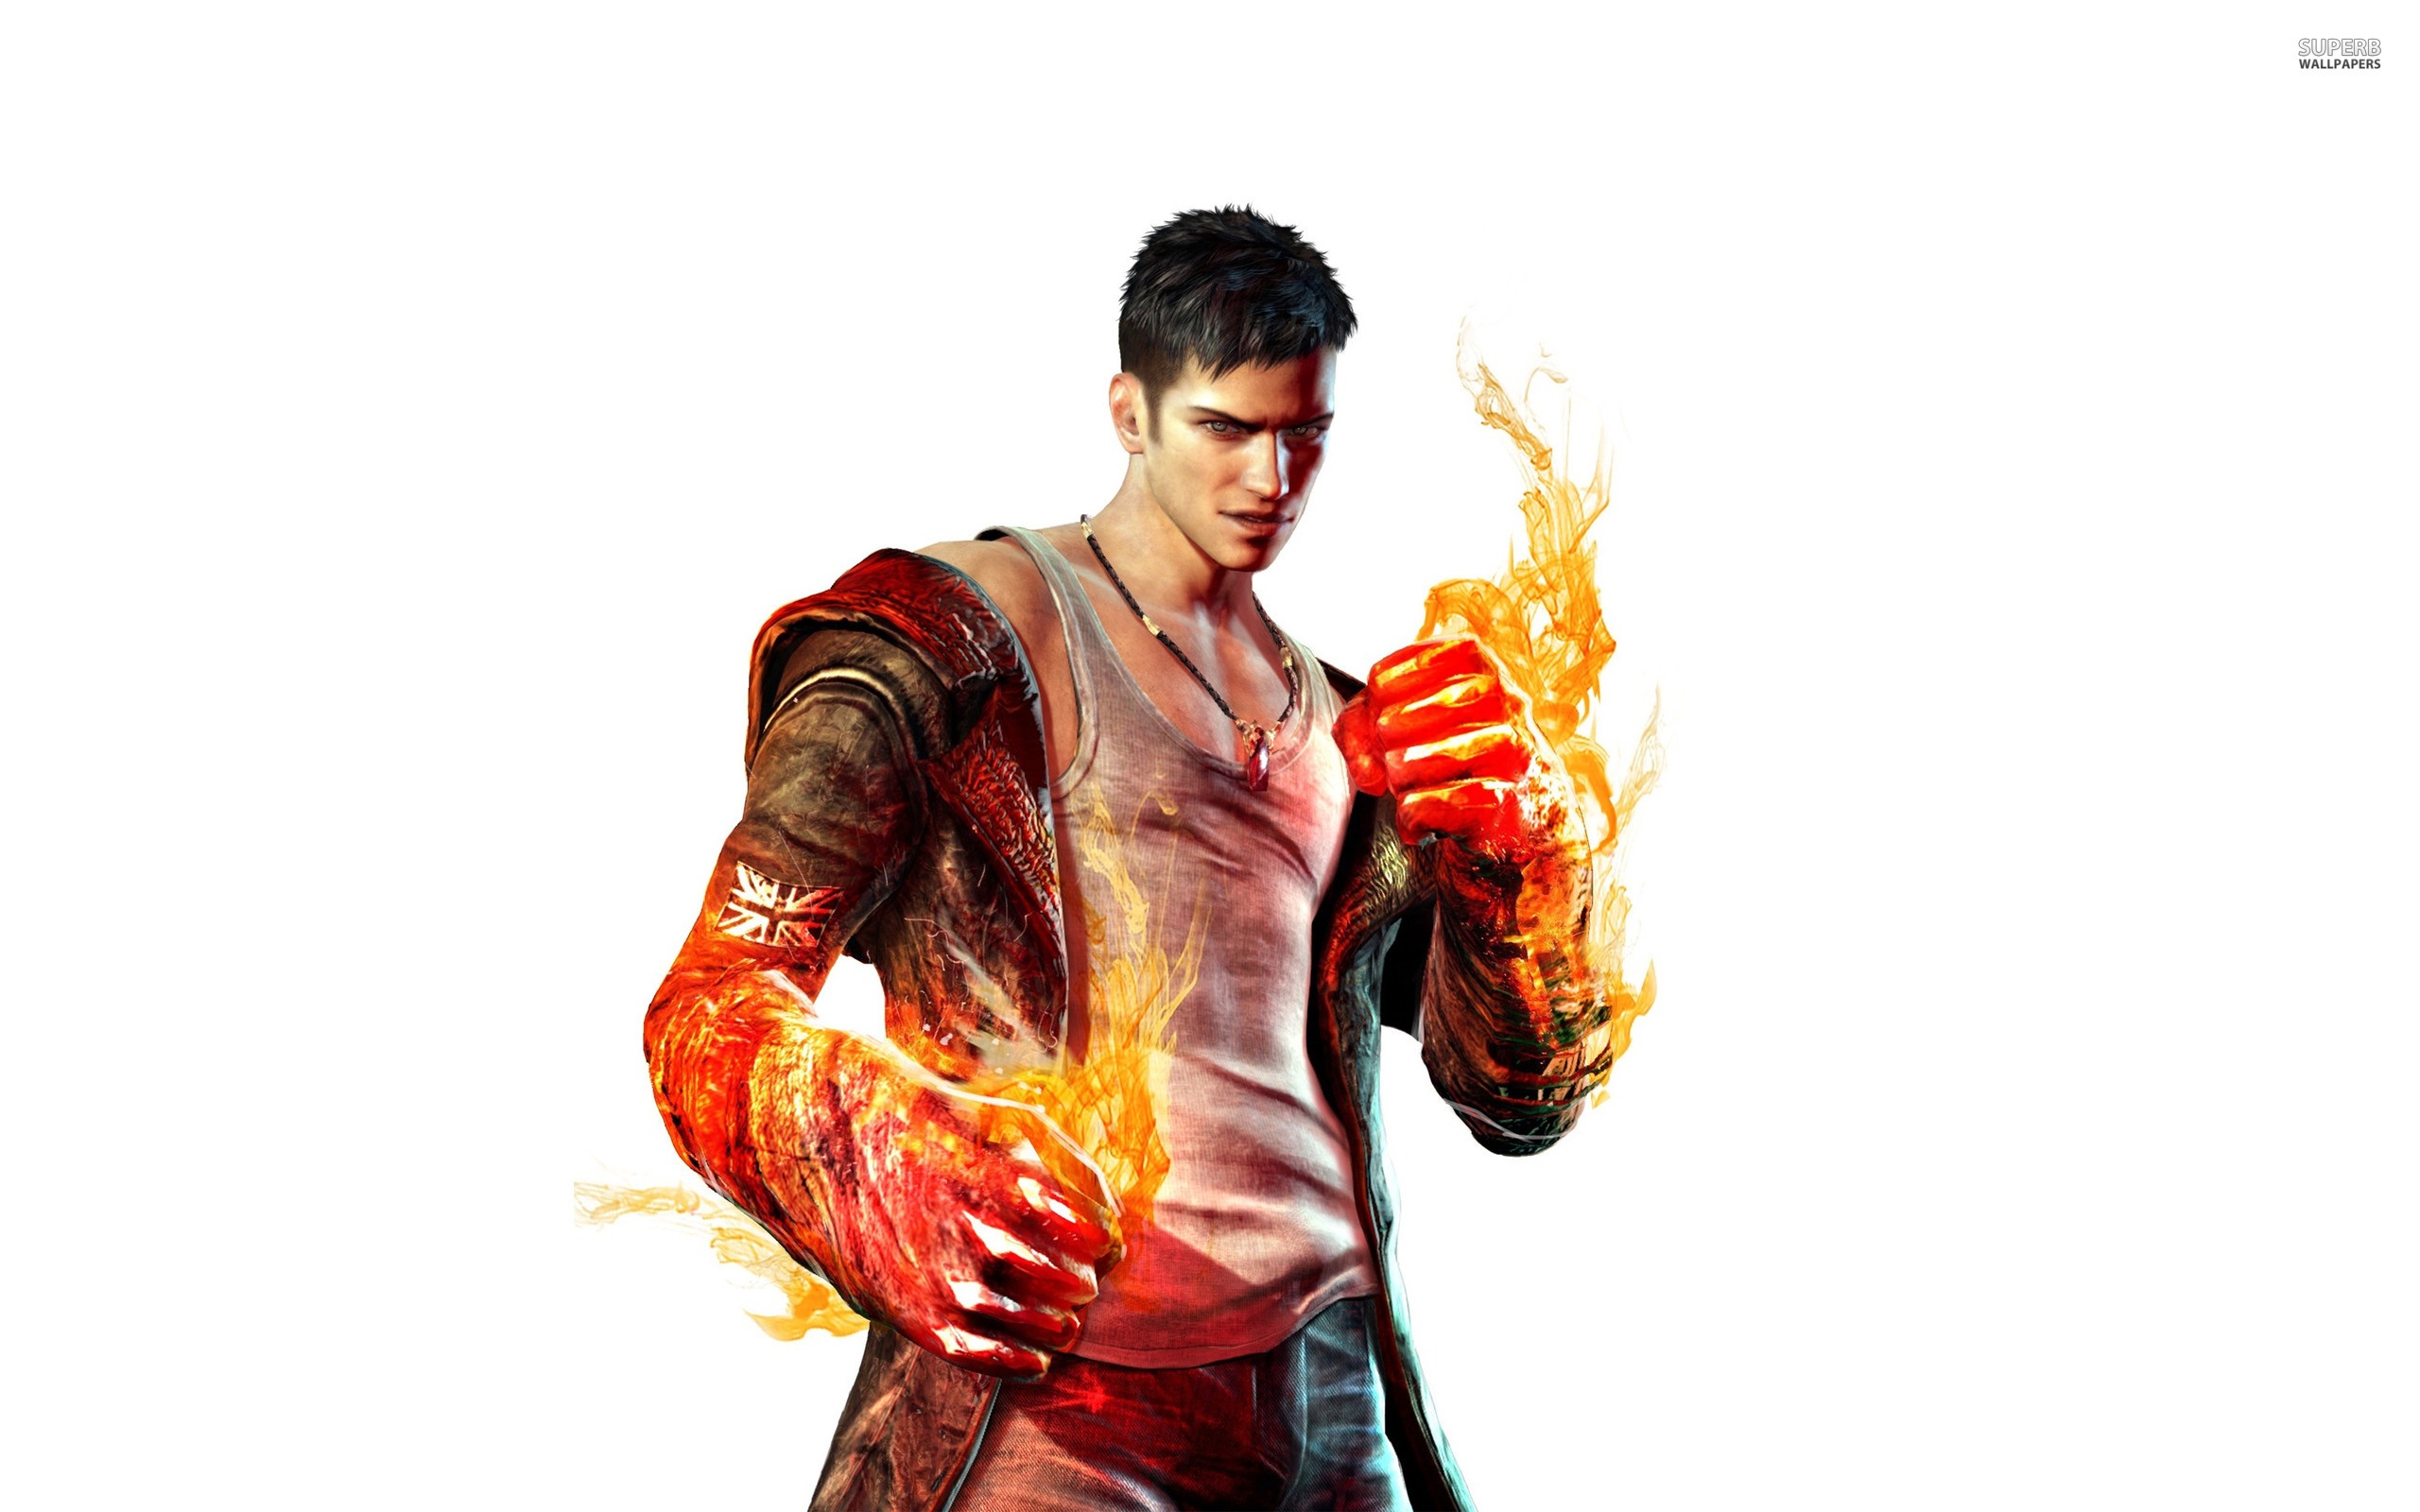 Dante Devil May Cry 5 HD Wallpapers   Dante Devil May Cry 5 2560x1600